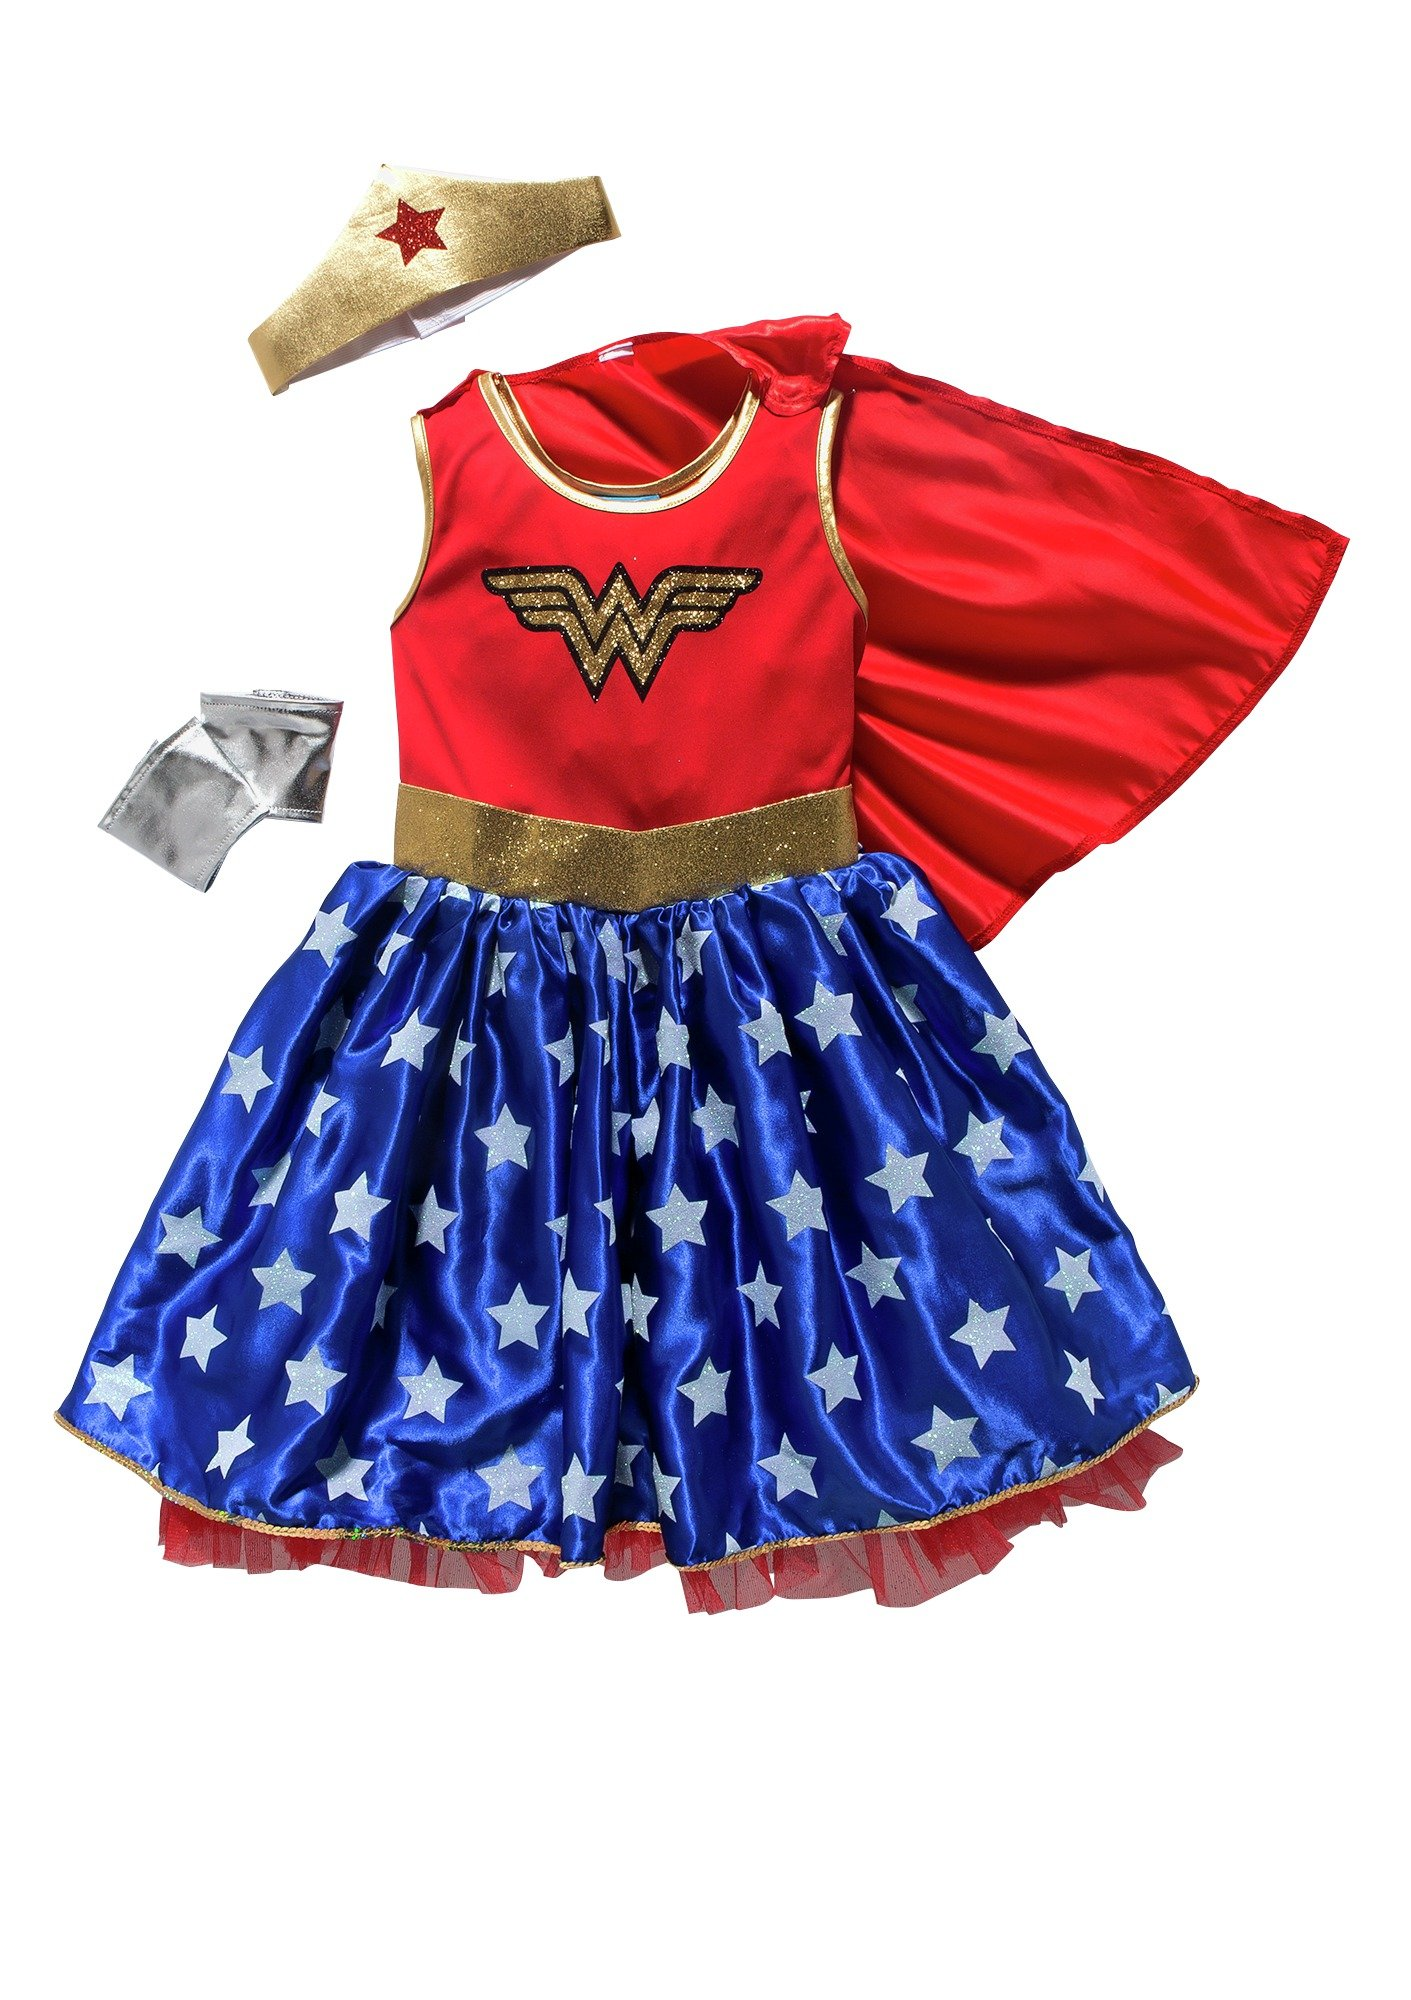 DC Wonder Woman Children's Fancy Dress Costume - 5-6 Years